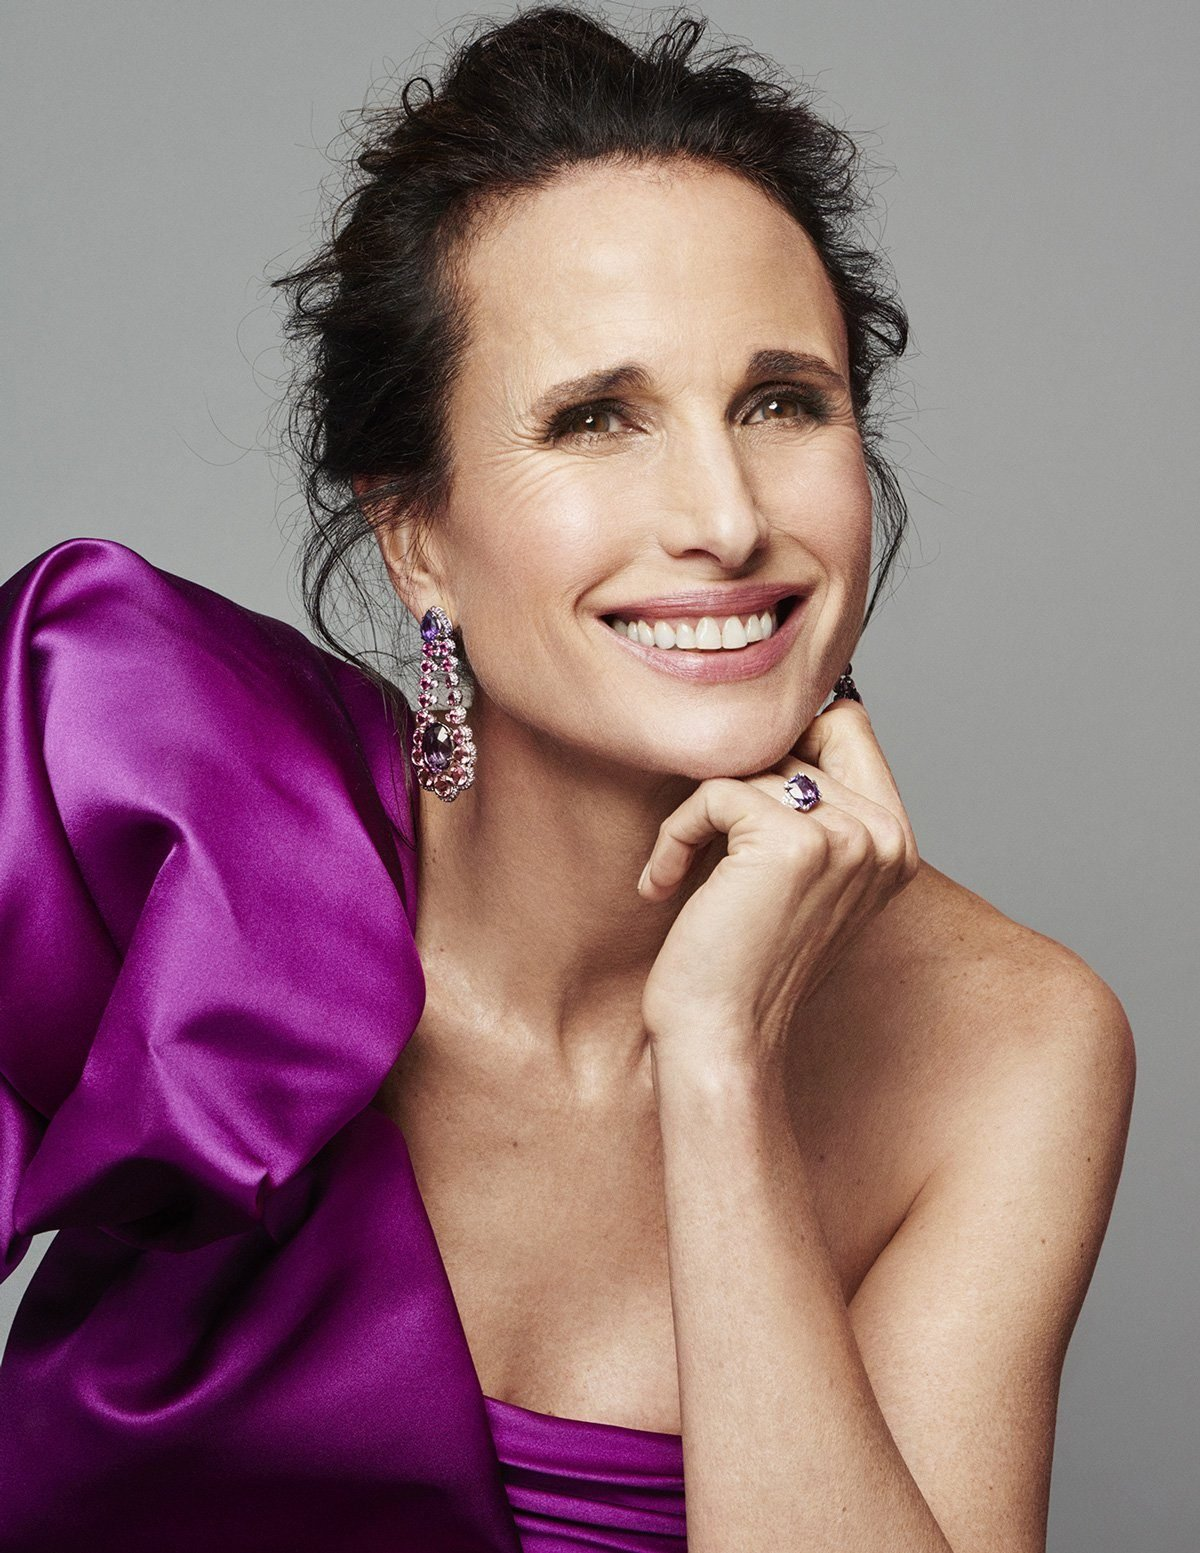 Andie MacDowell nudes (58 photo), Pussy, Fappening, Instagram, see through 2006